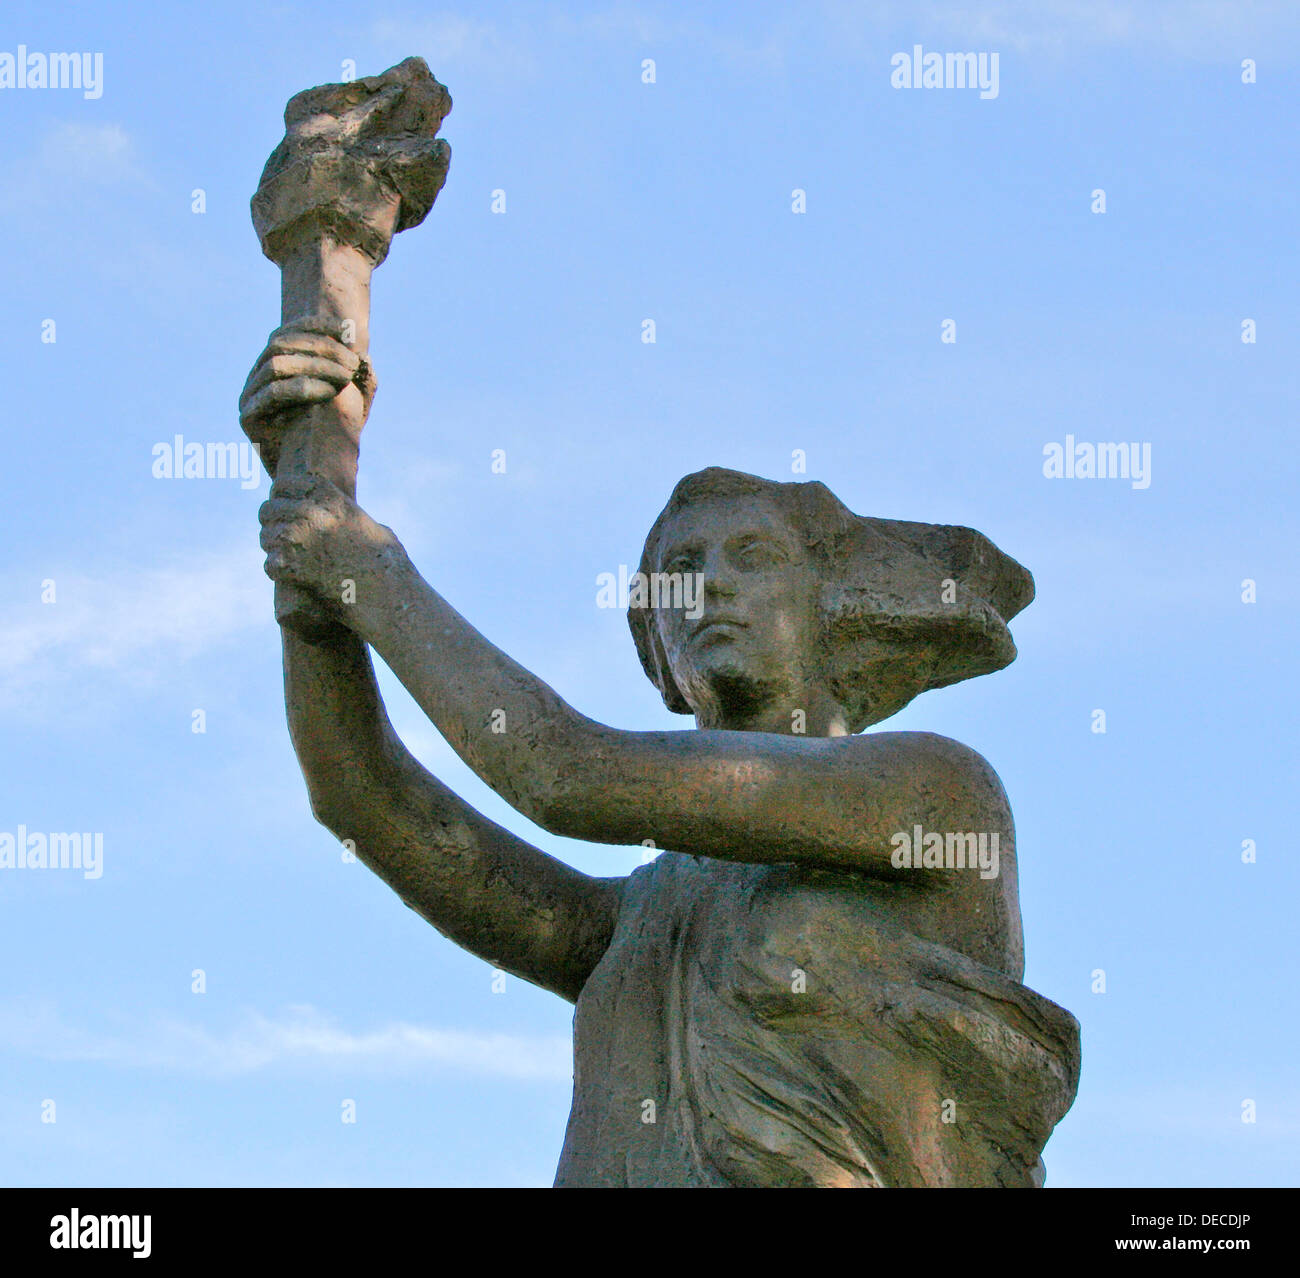 Victims of Communism Memorial in Washington DC. This is a recreation by Thomas Marsh of the statue 'Goddess of Democracy' that was the symbol of the protestors erected in Tianamen Square in 1989 and brutally destroyed by the PRC Communist government. - Stock Image